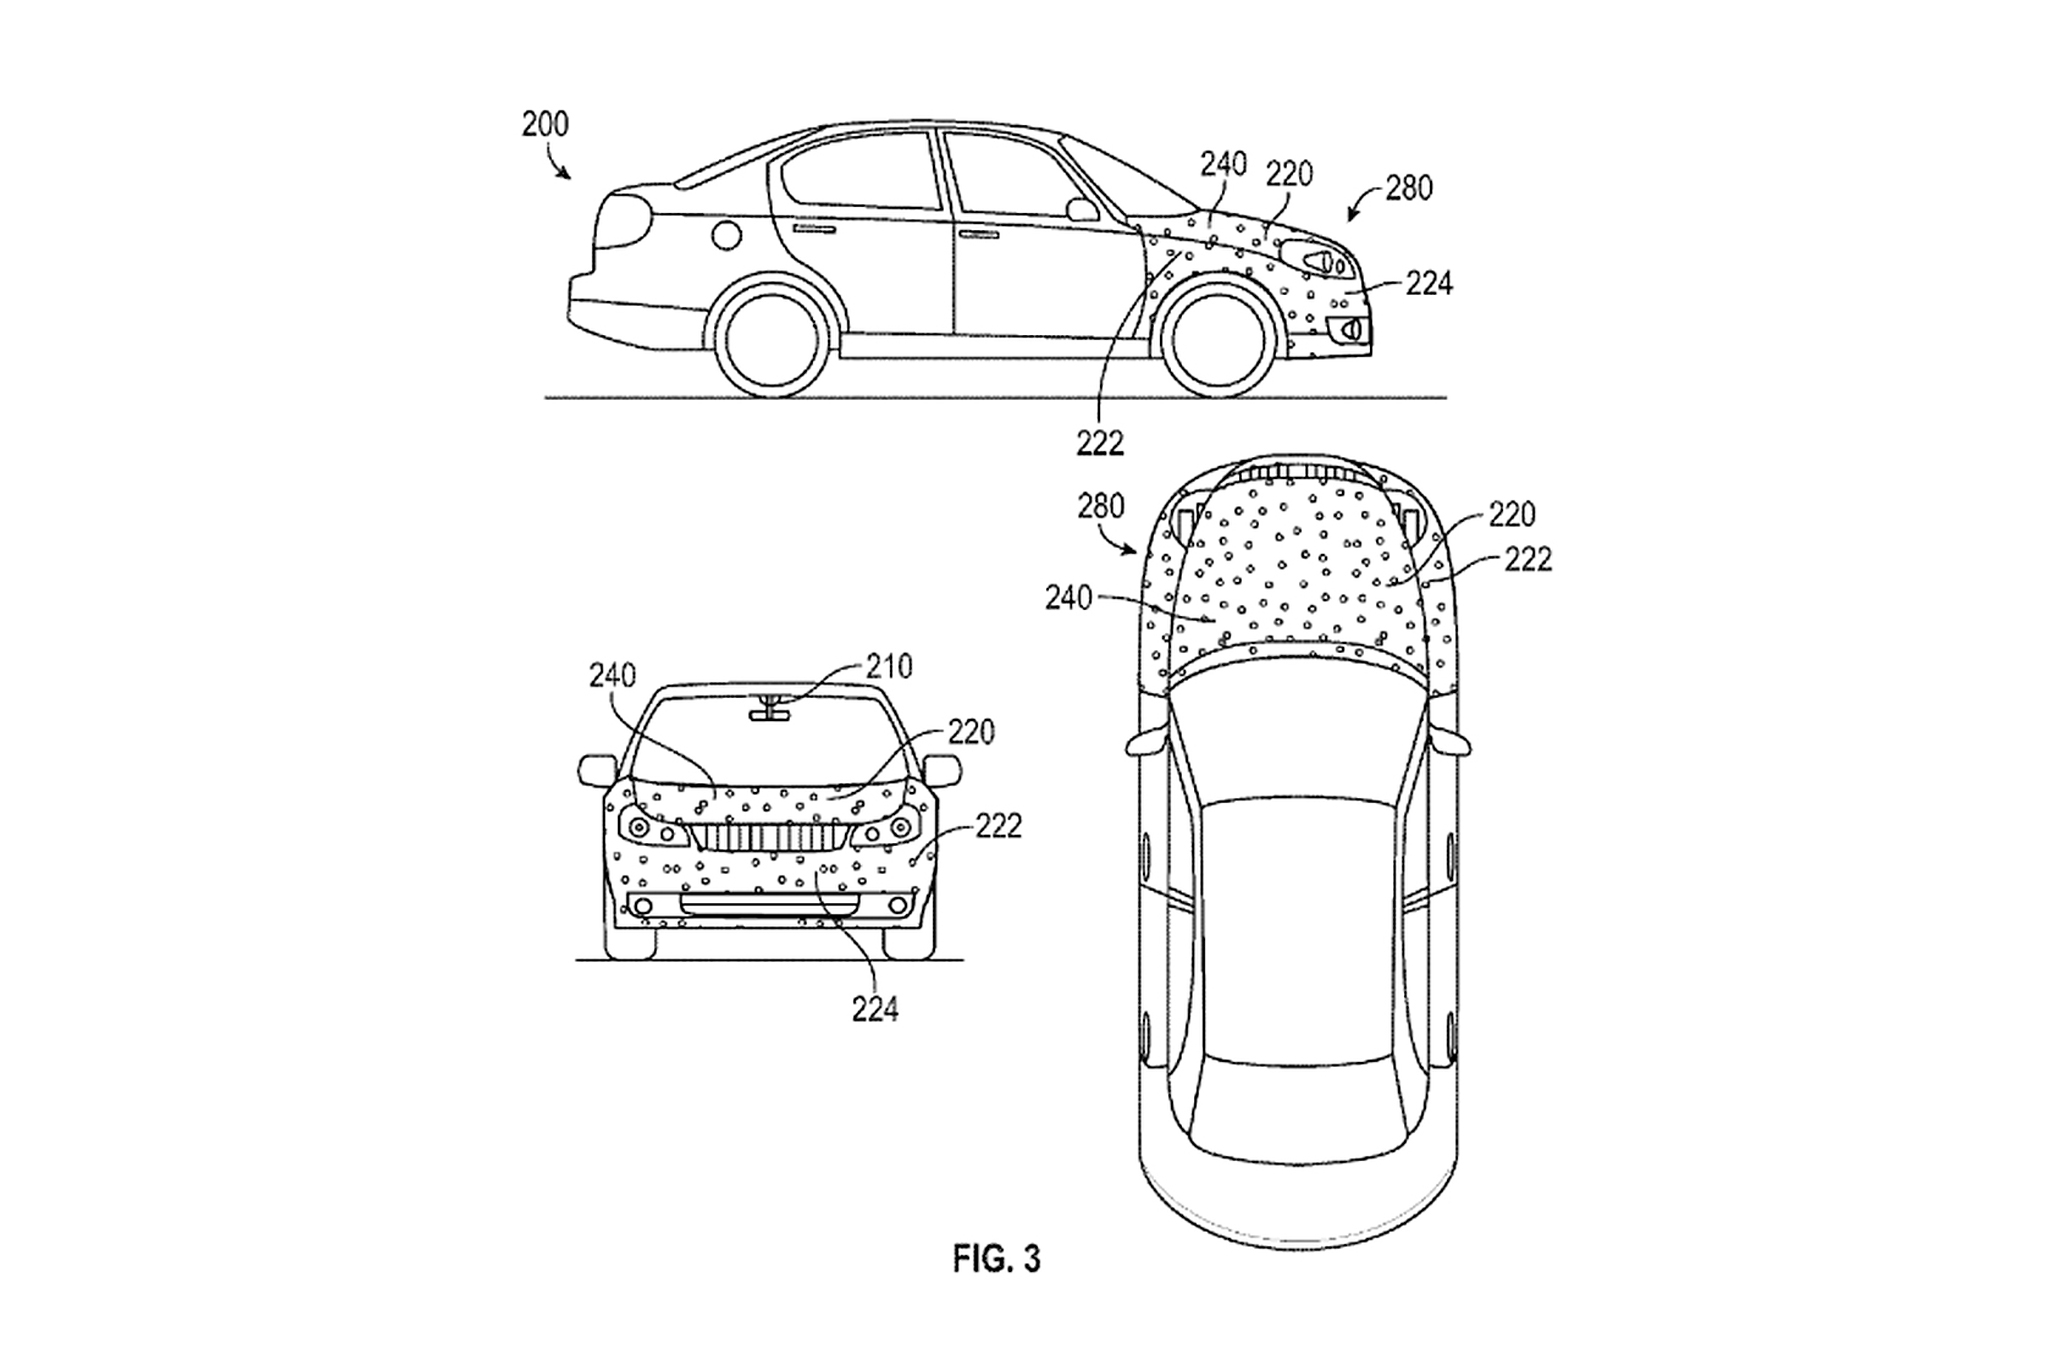 Google-Adhesive-Vehicle-Layer-for-pedestrians-02